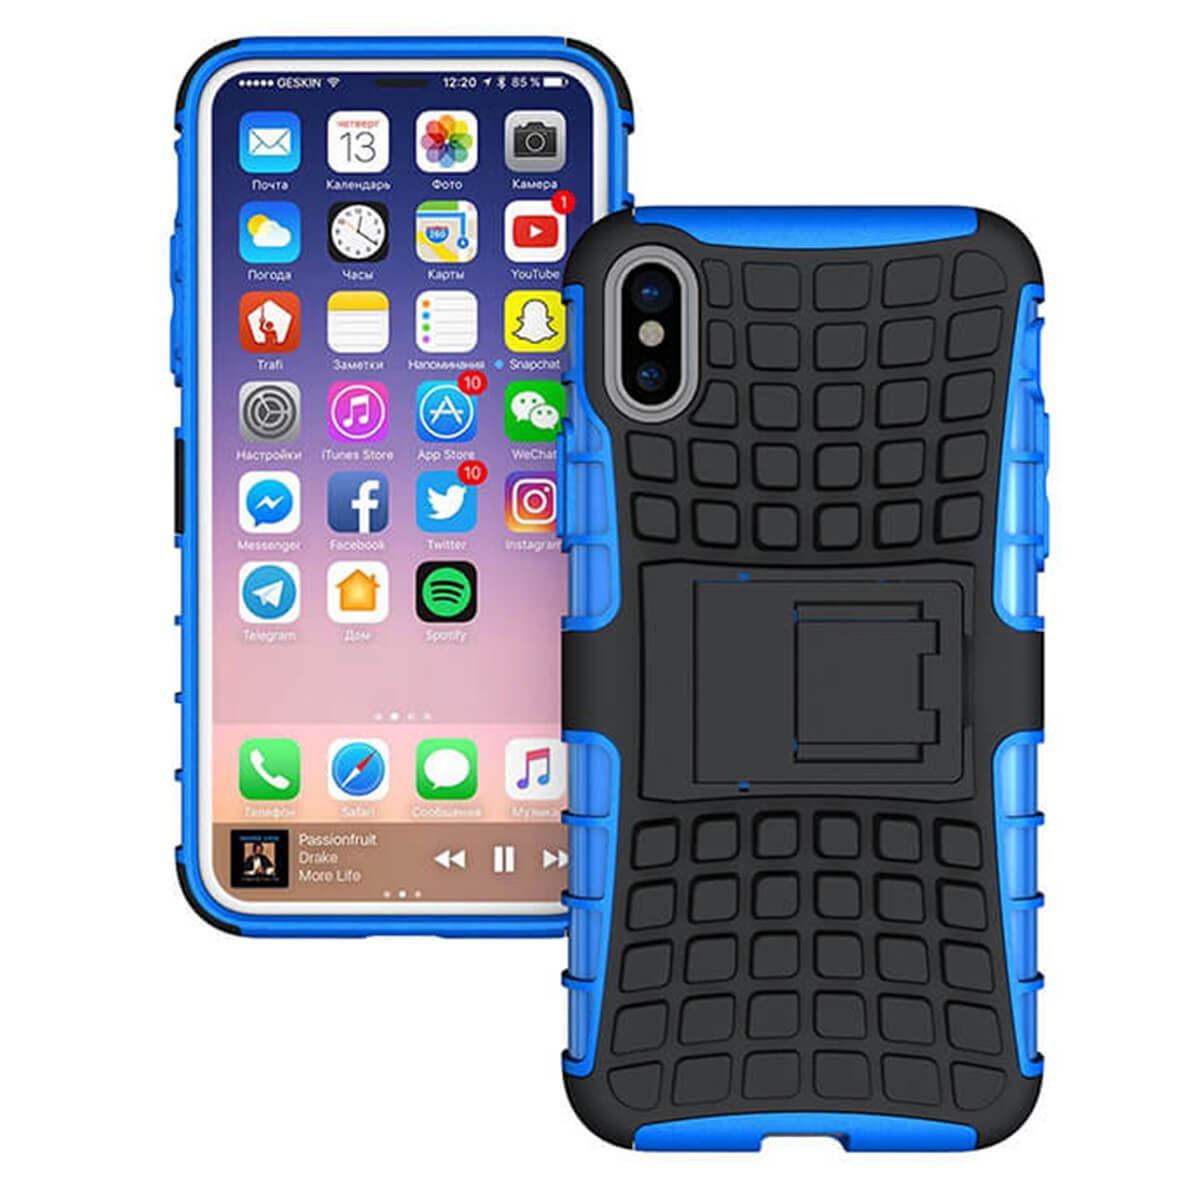 Shockproof-Case-Apple-iPhone-10-X-8-7-6s-Se-5-Hard-Heavy-Duty-Stand-Armour-Cover thumbnail 7